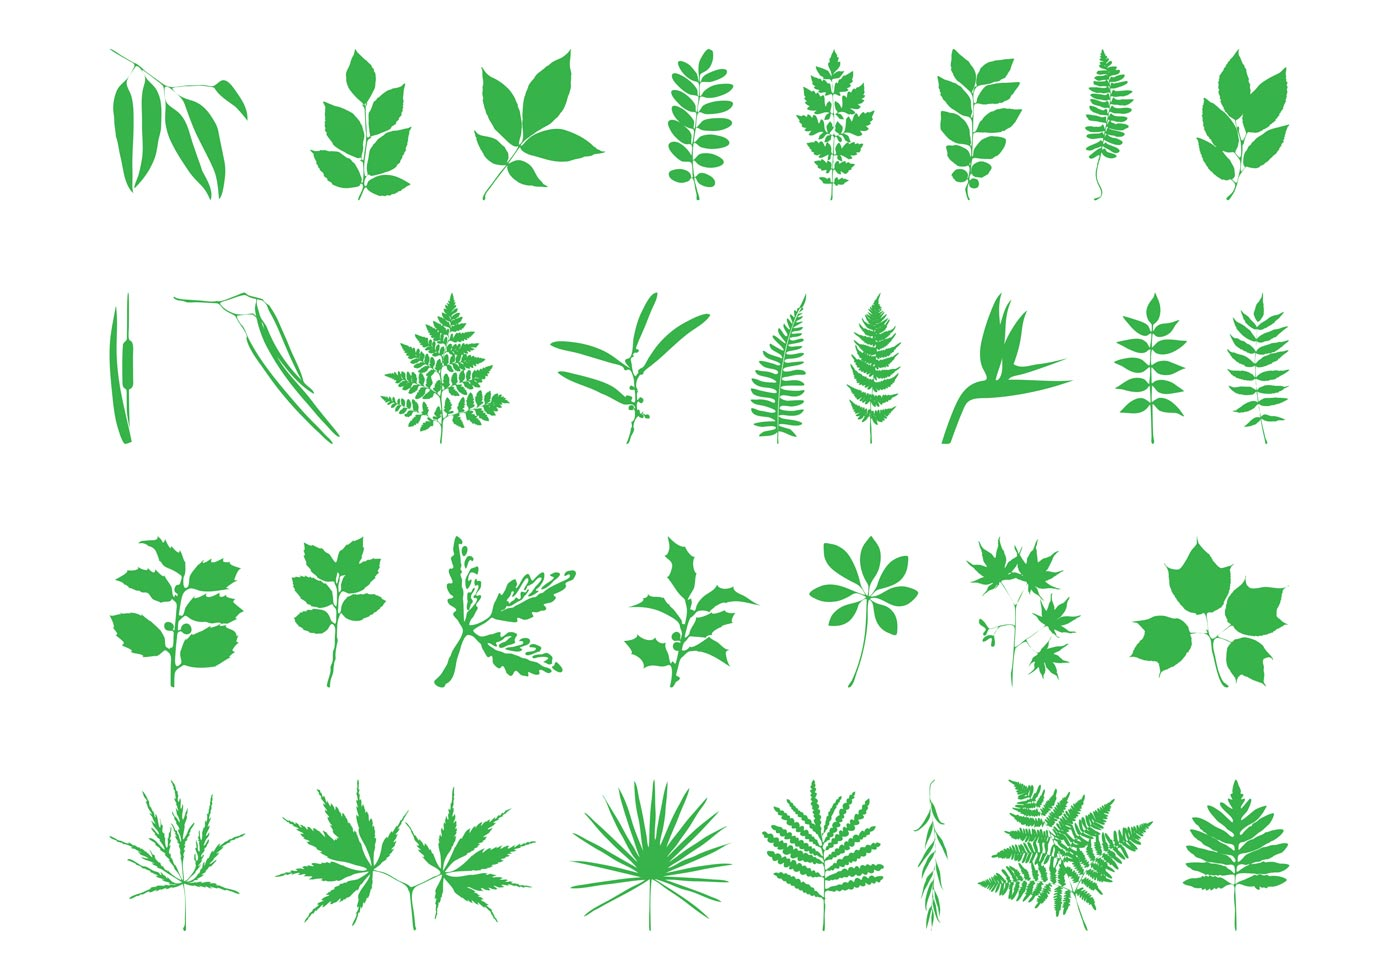 Unusual House Names Leaves And Branches Set Download Free Vector Art Stock